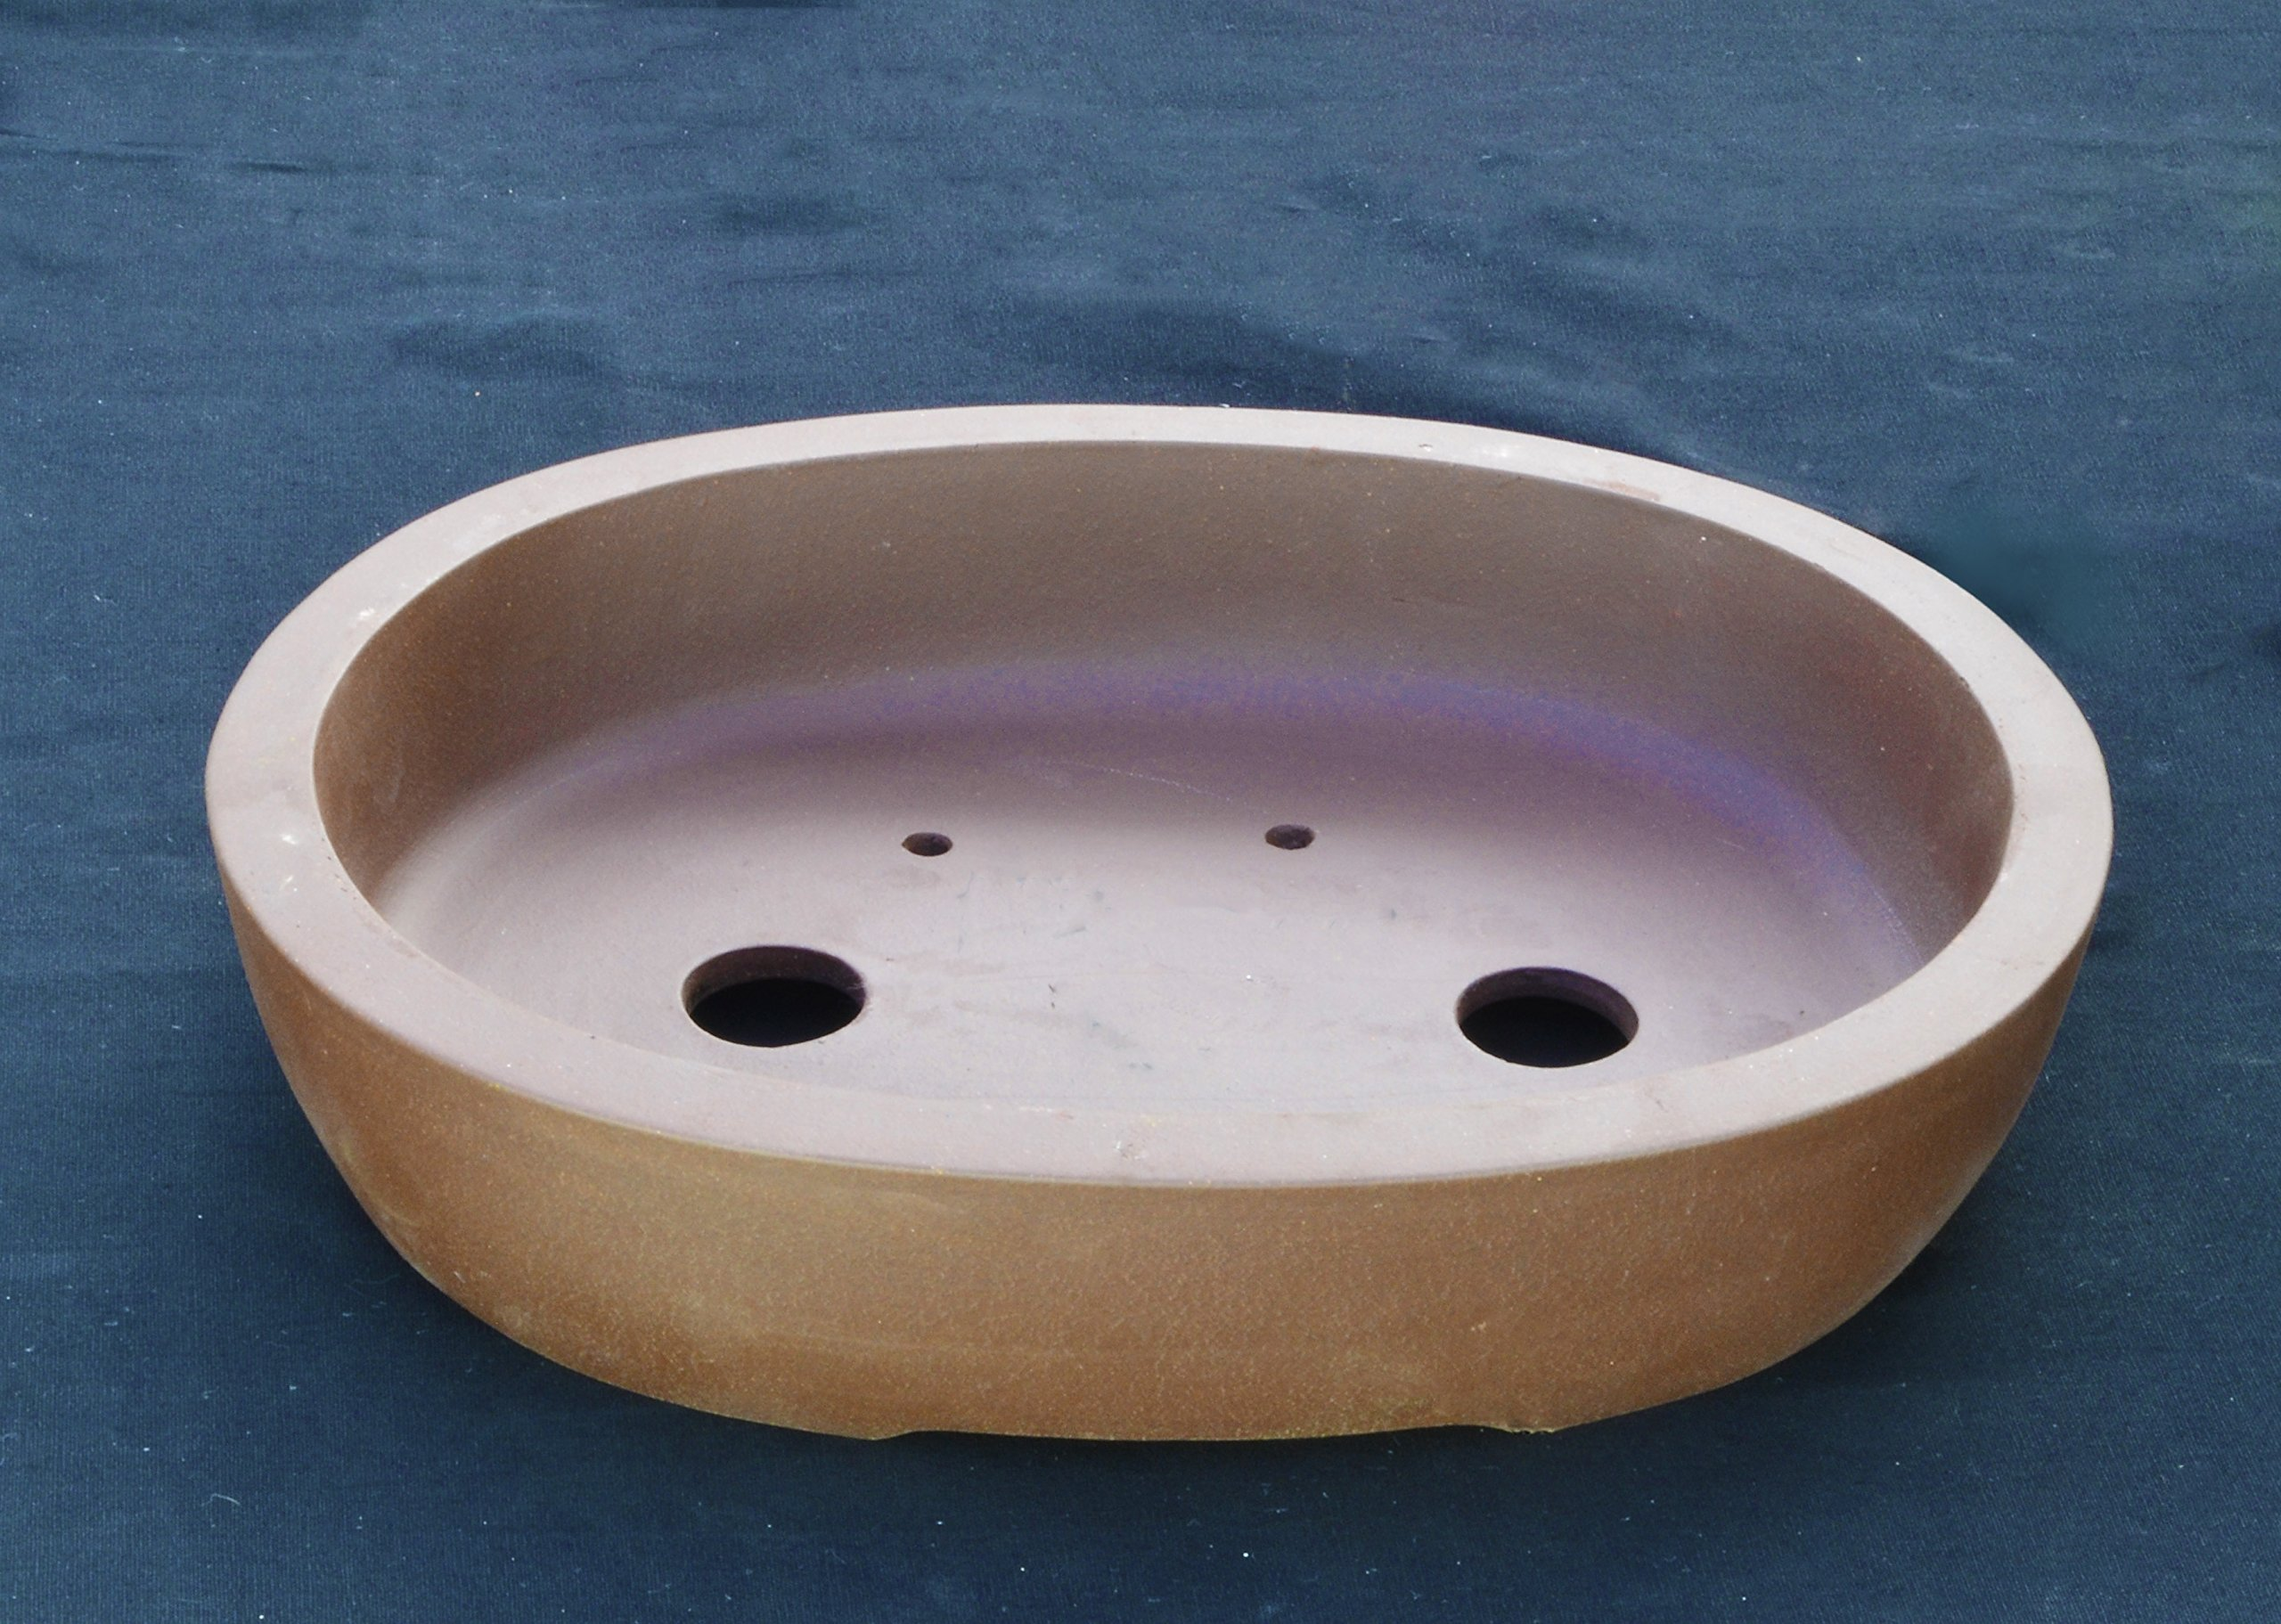 Large Unglazed 24'' Oval Yixing Purple Clay Ceramic Bonsai Pot(PB13-24) by BonsaiSupplies